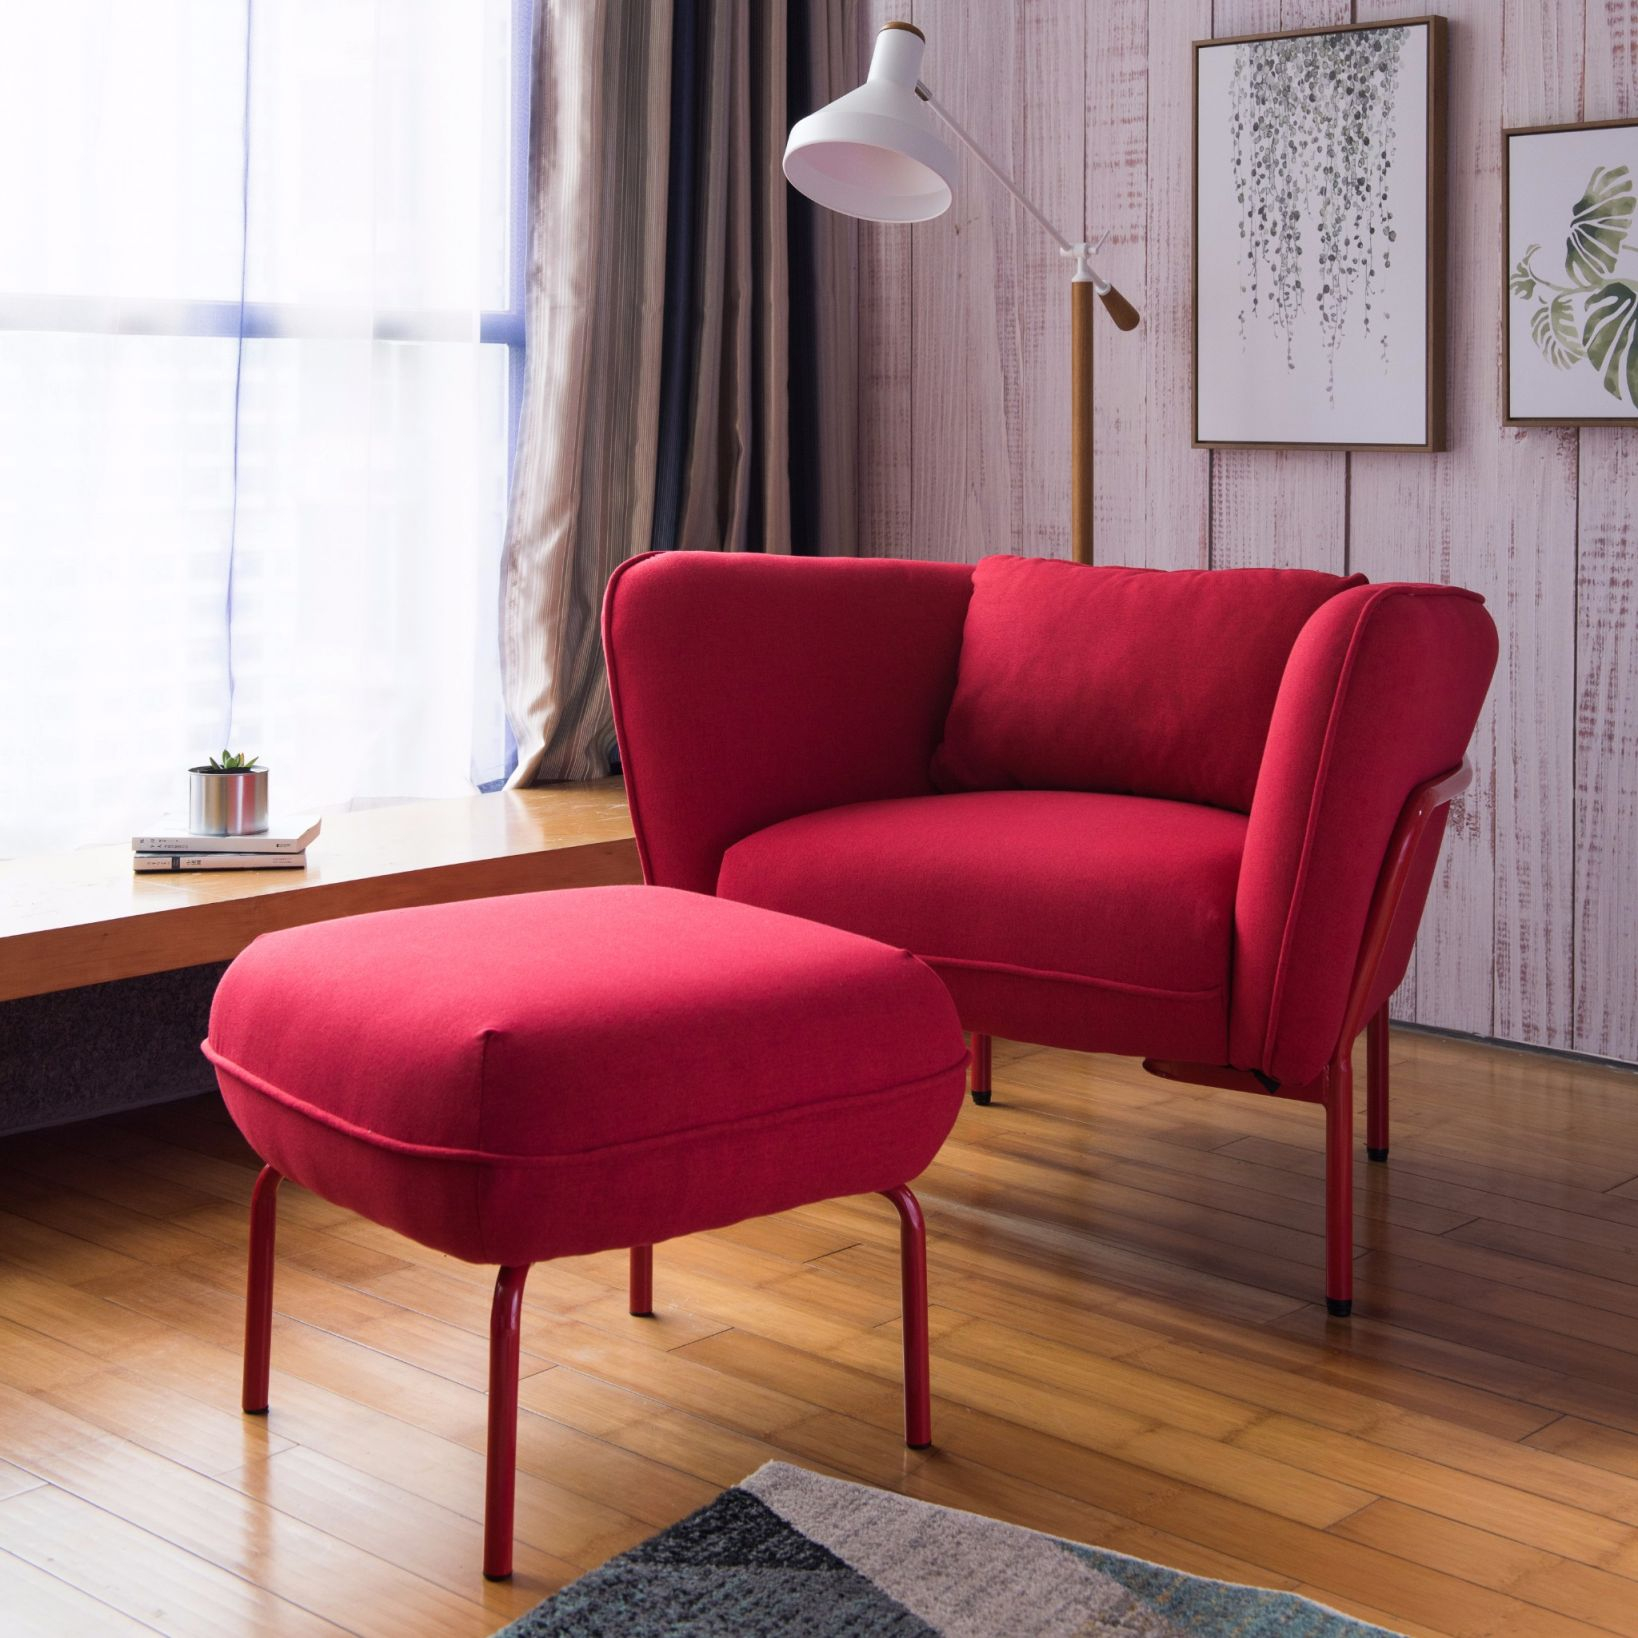 Details About Armrest Chair And Ottoman Lounge Chair Living